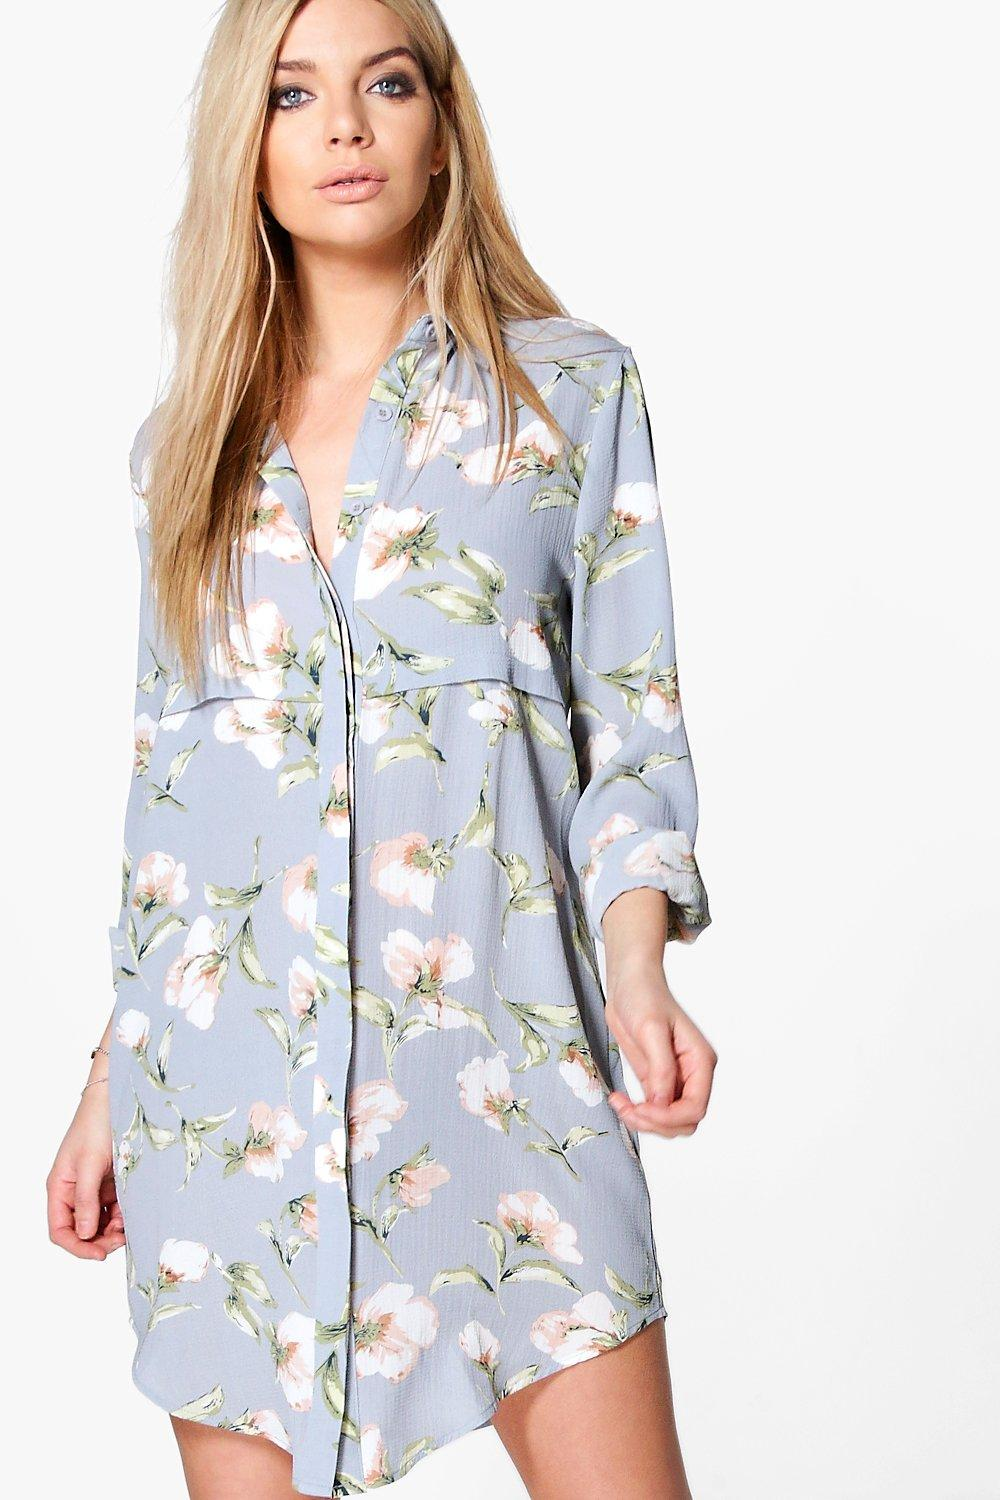 a882097c0d Anna Floral Printed Shirt Dress. Hover to zoom